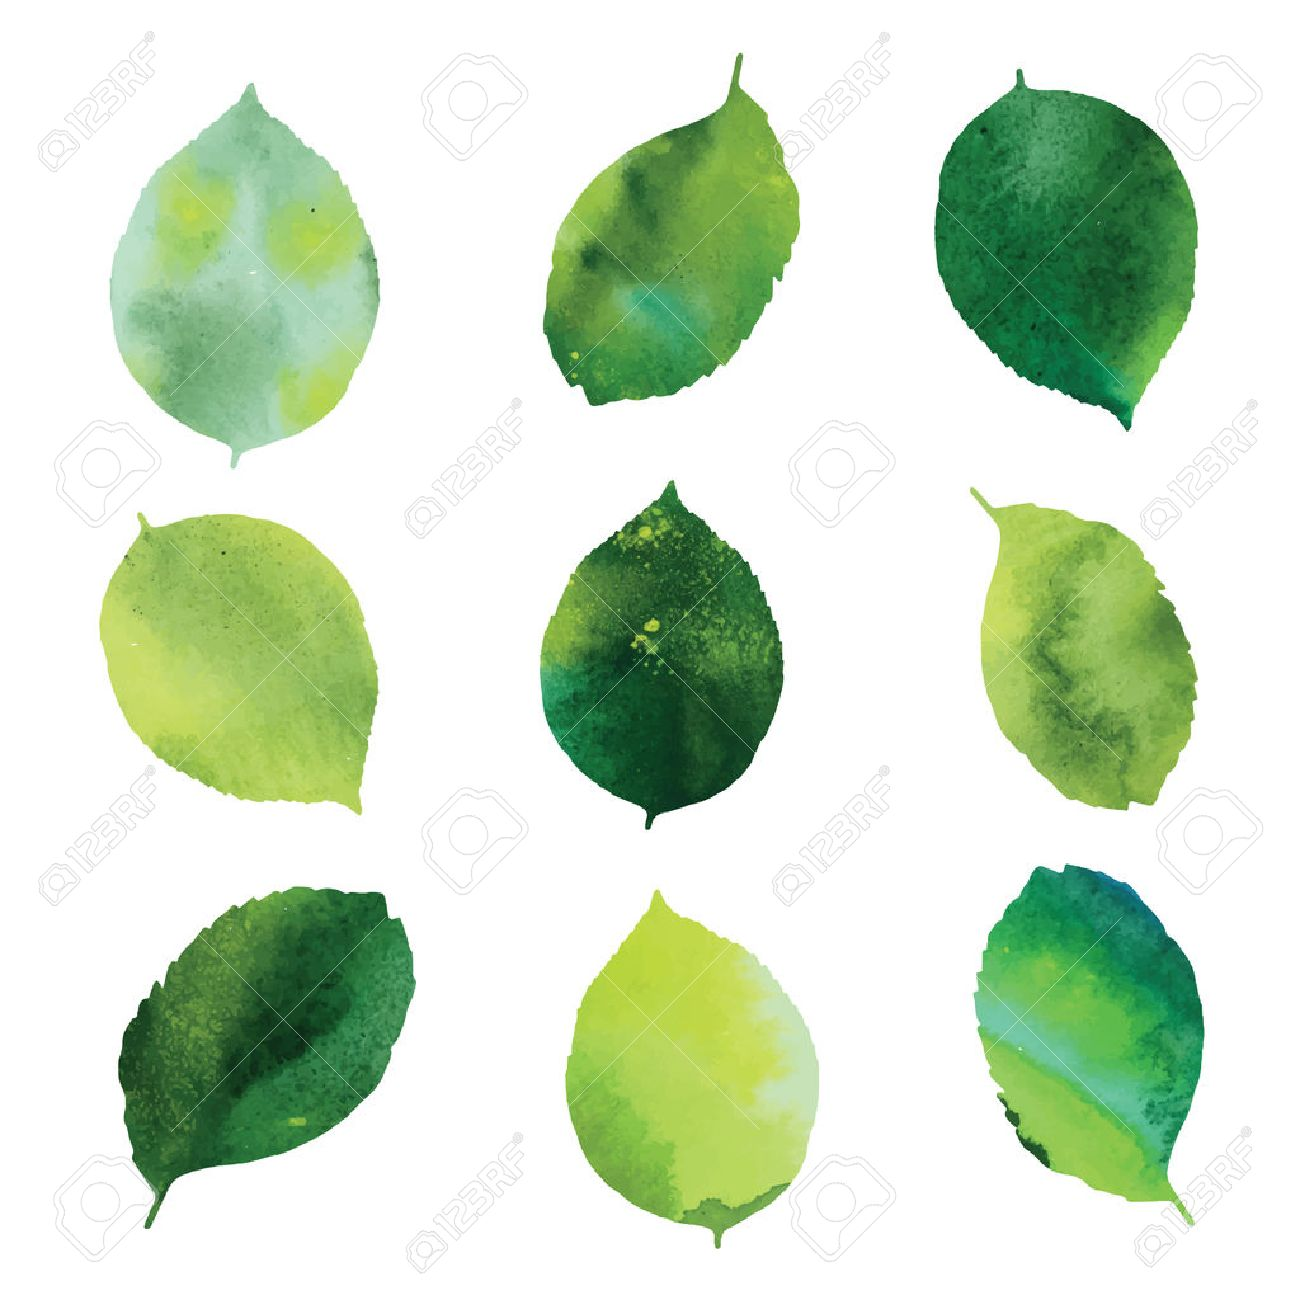 Set of green watercolor leaves. - 52841999